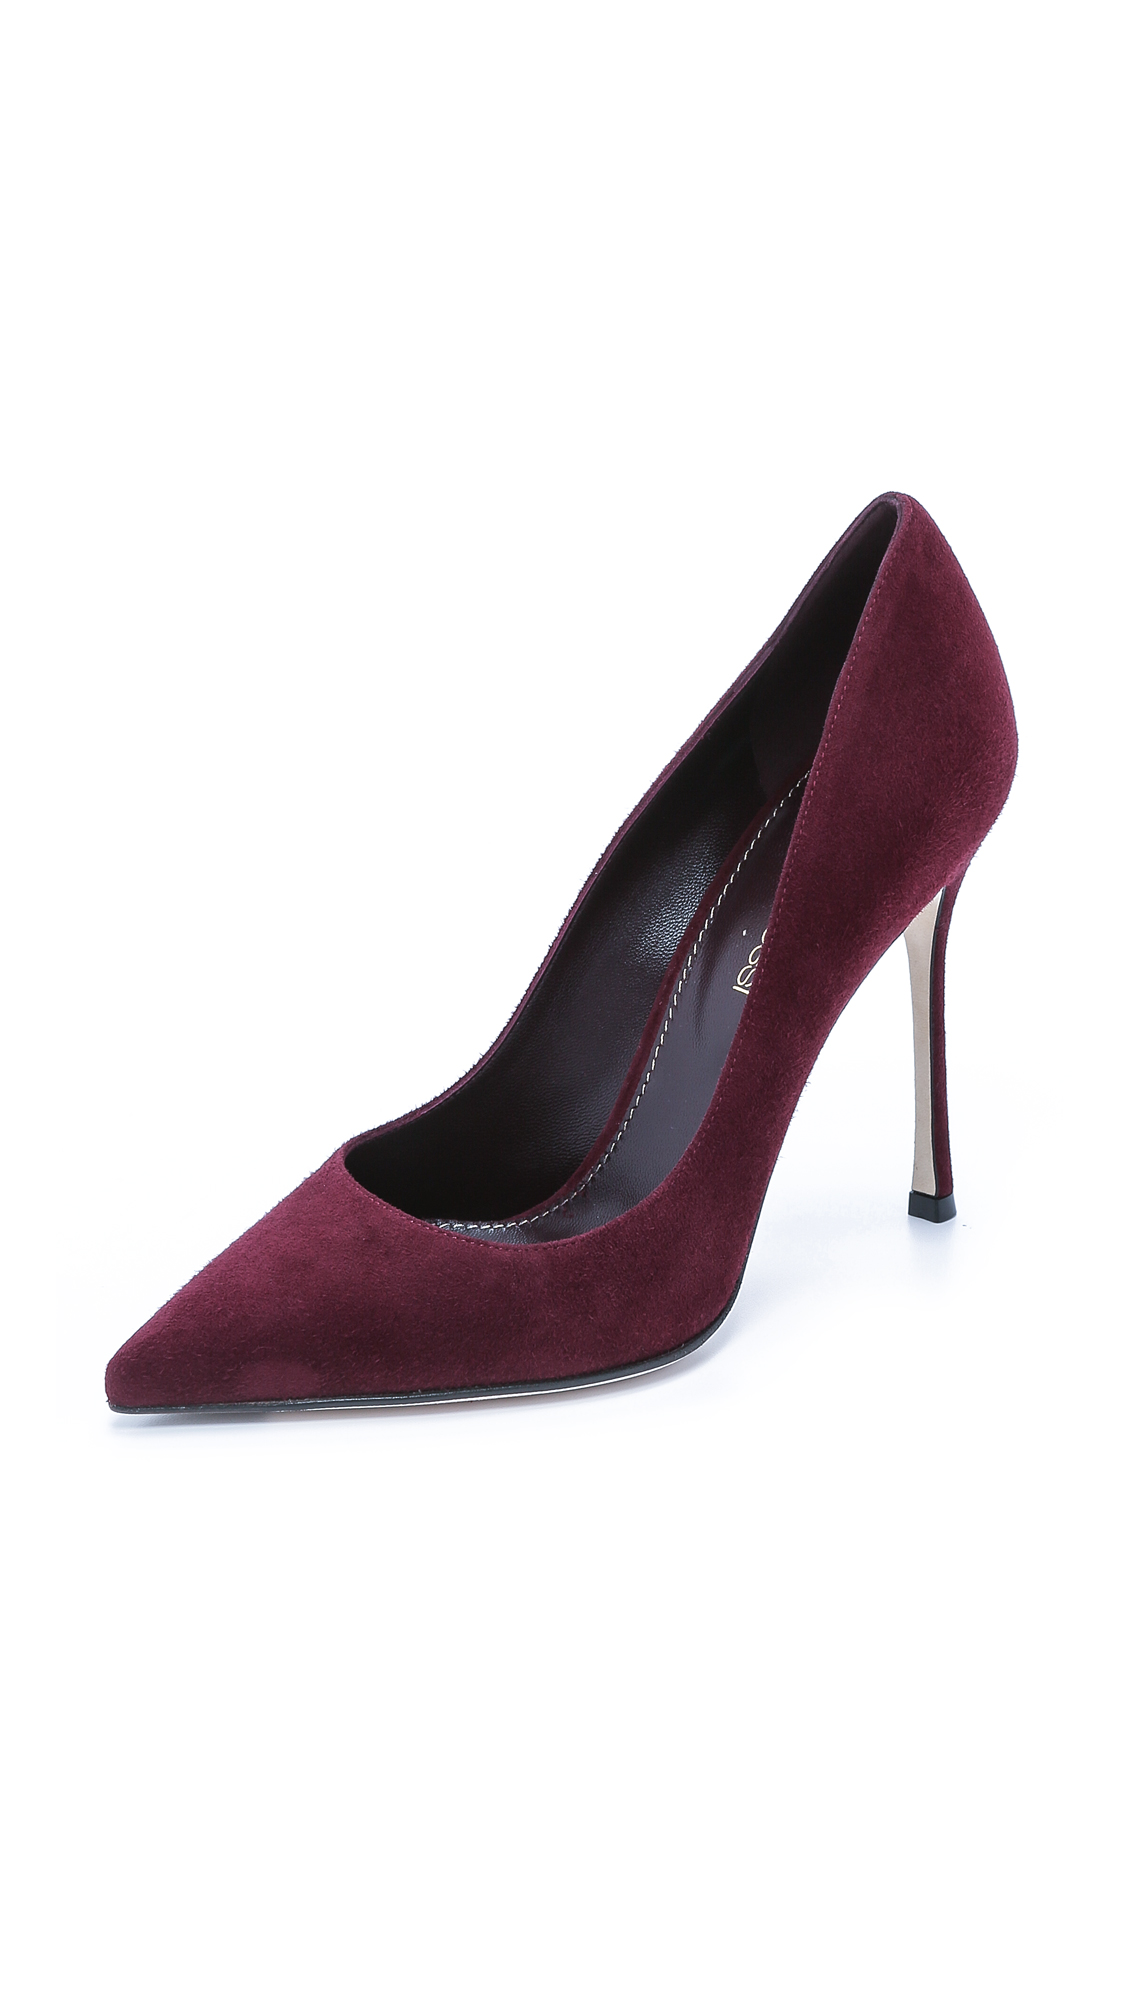 Sergio Rossi Godiva Suede Pointed Pumps In Chateau Chablis